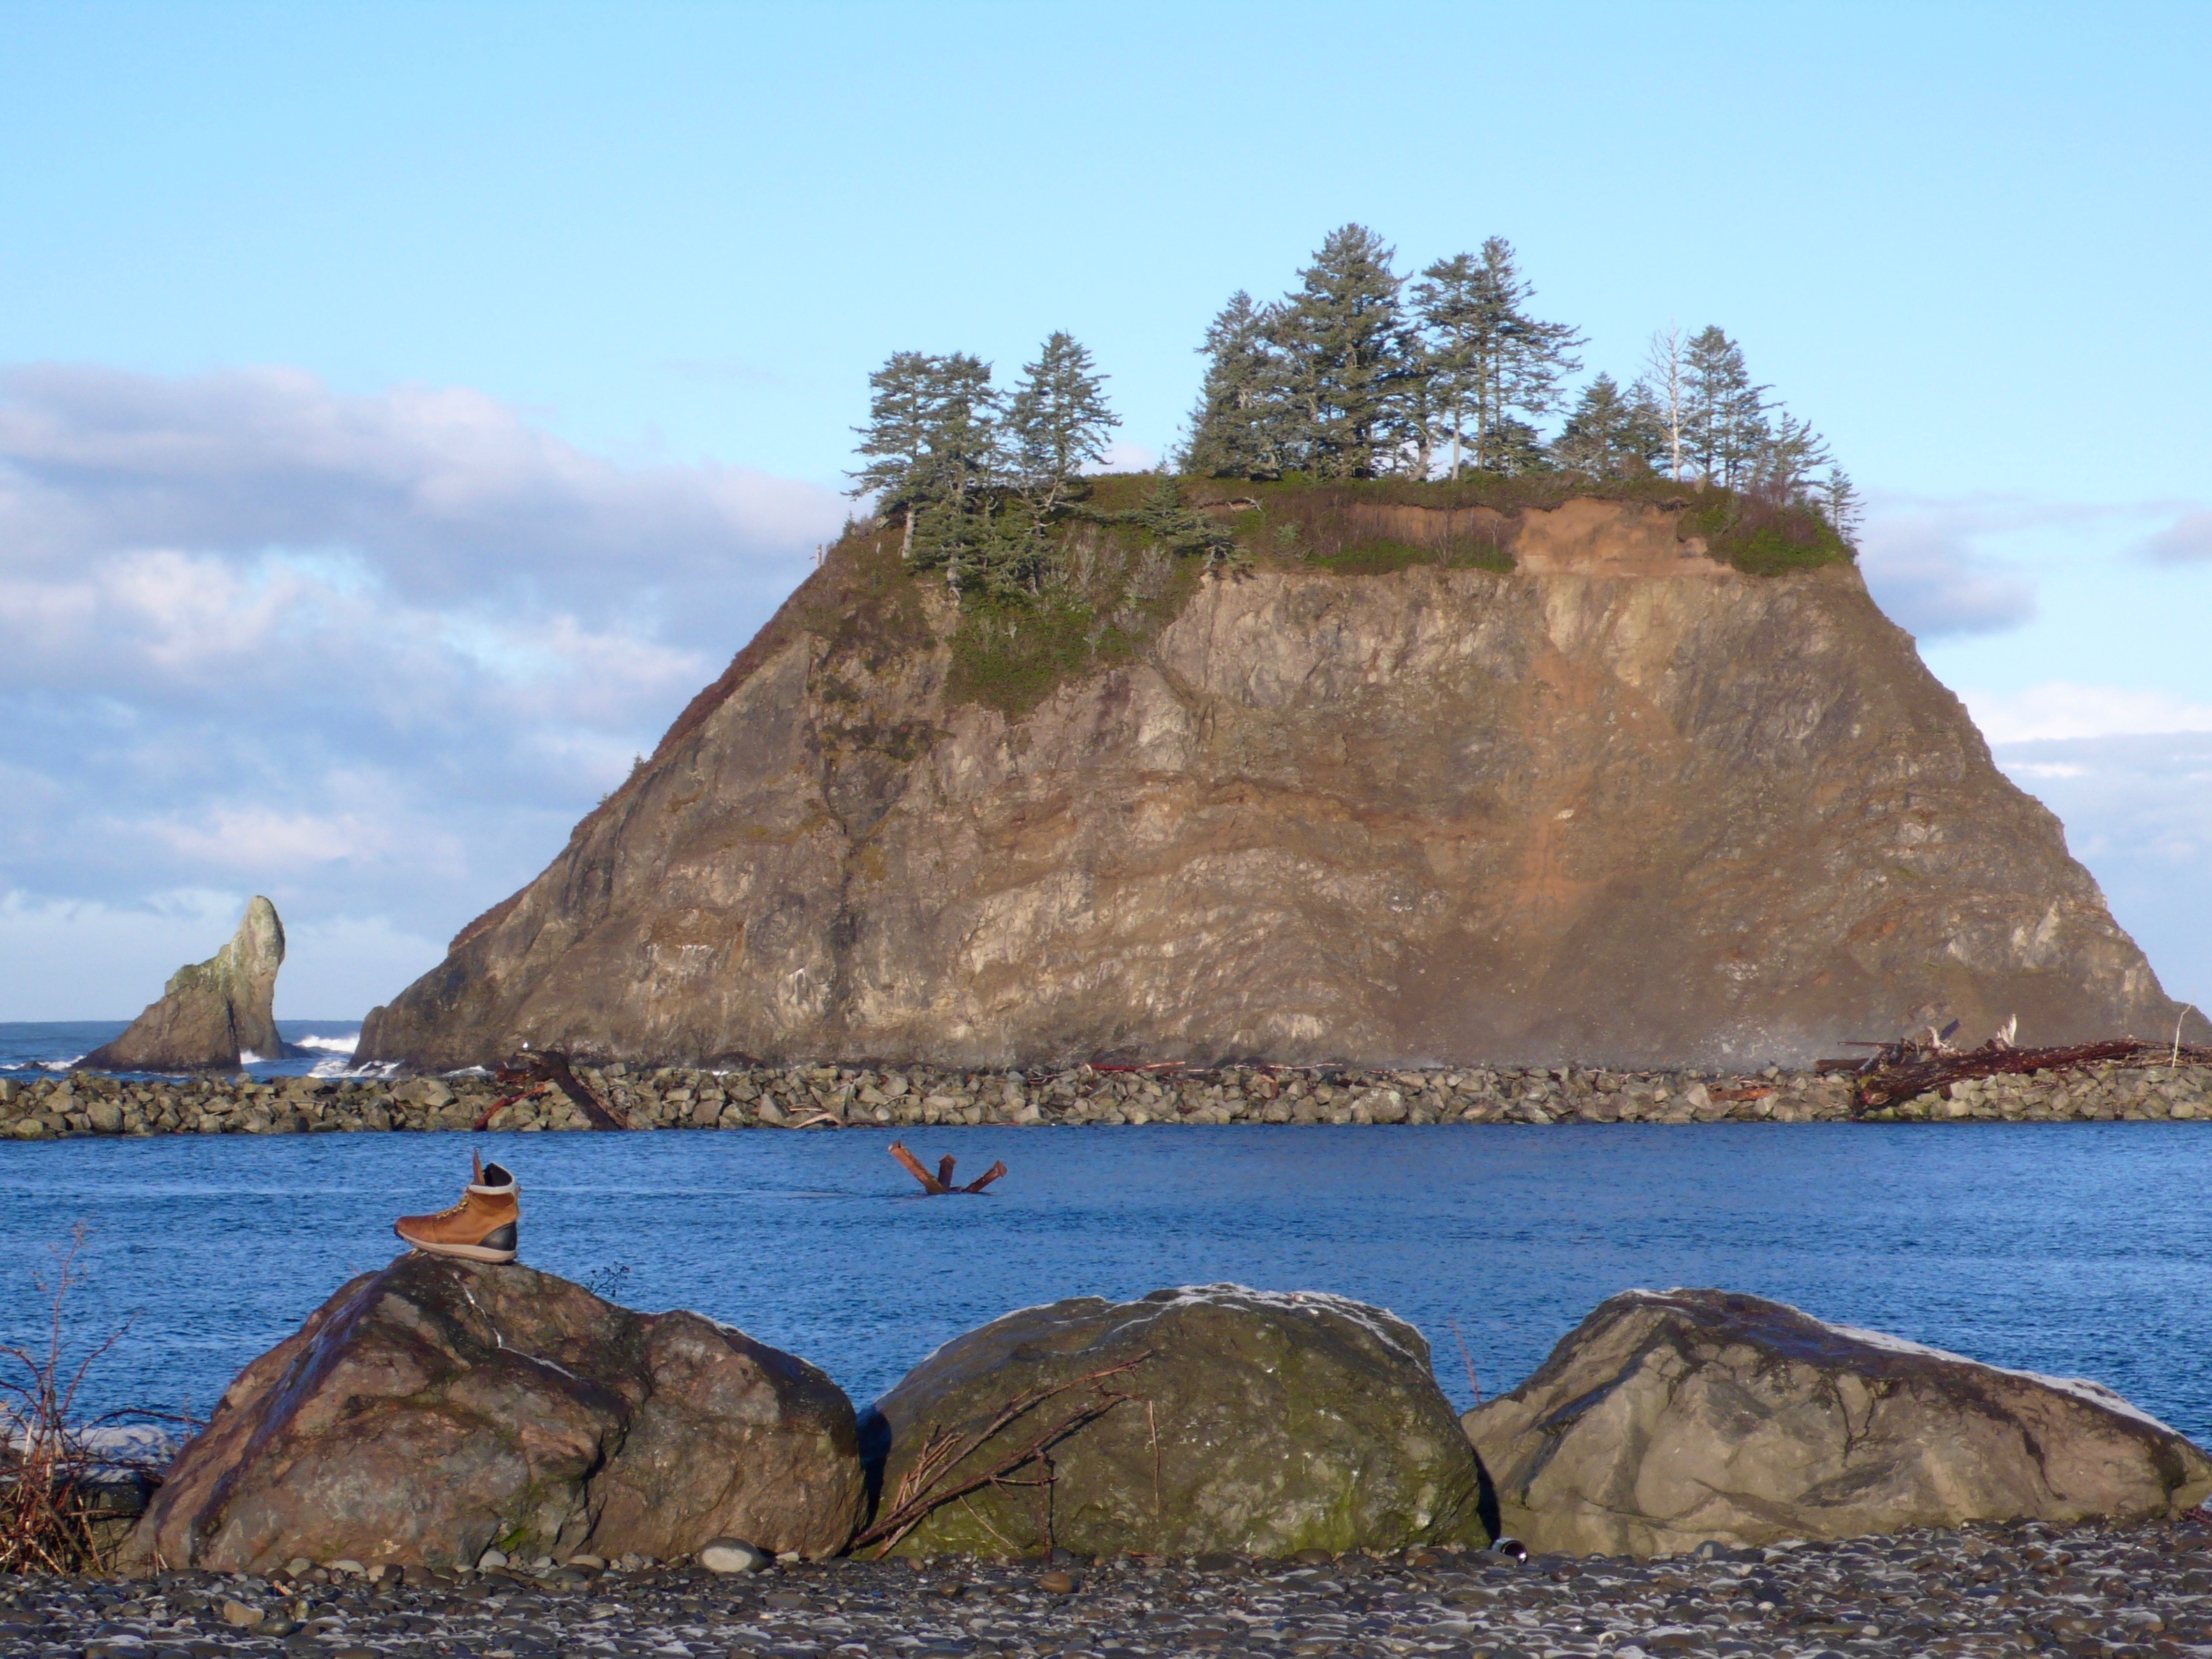 Looks unreal. Color untouched, clear skies, cold day at La Push